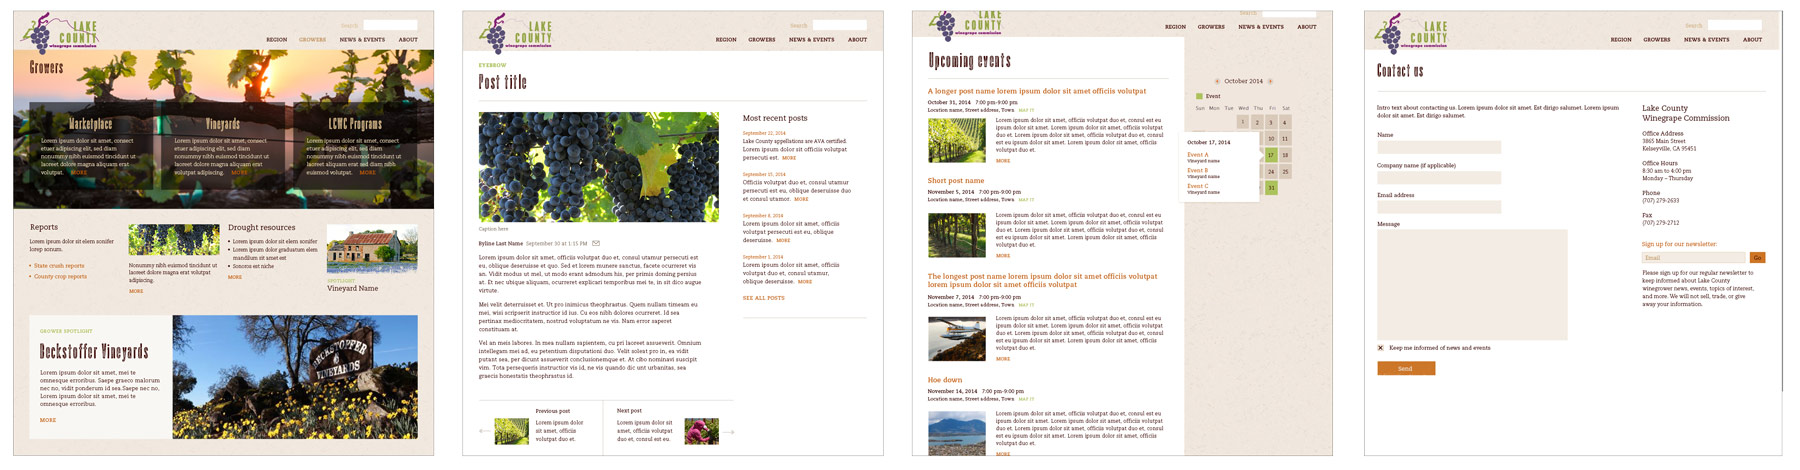 A selection of web pages with visual design applied